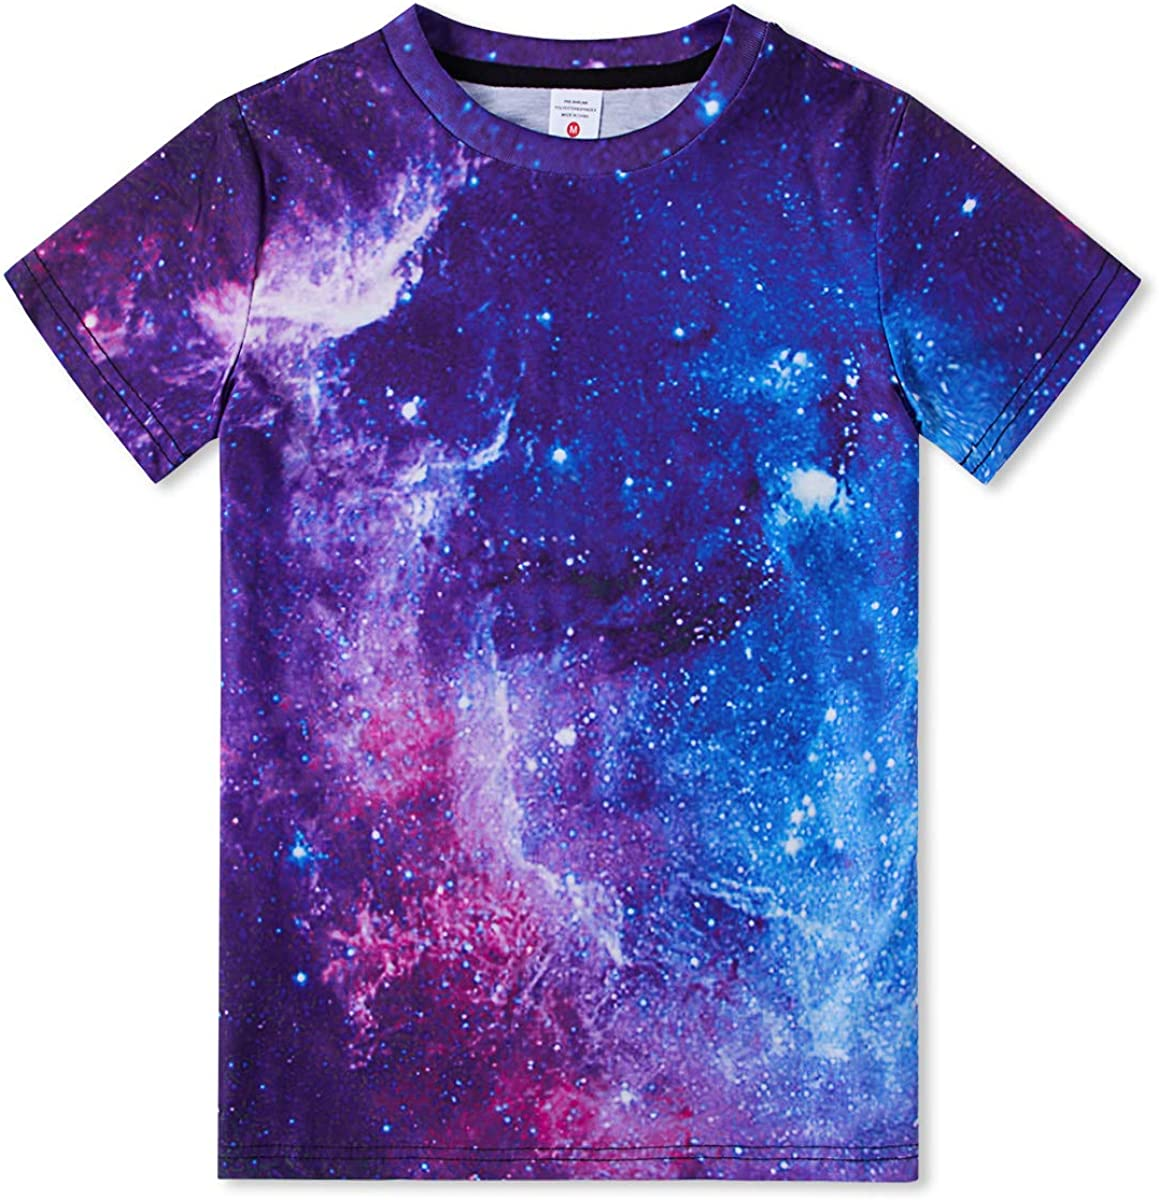 Funnycokid Boys Girls 3D Graphic T-Shirt Cool Casual Short Sleeve Tee Tops for Summer 6-16 Years